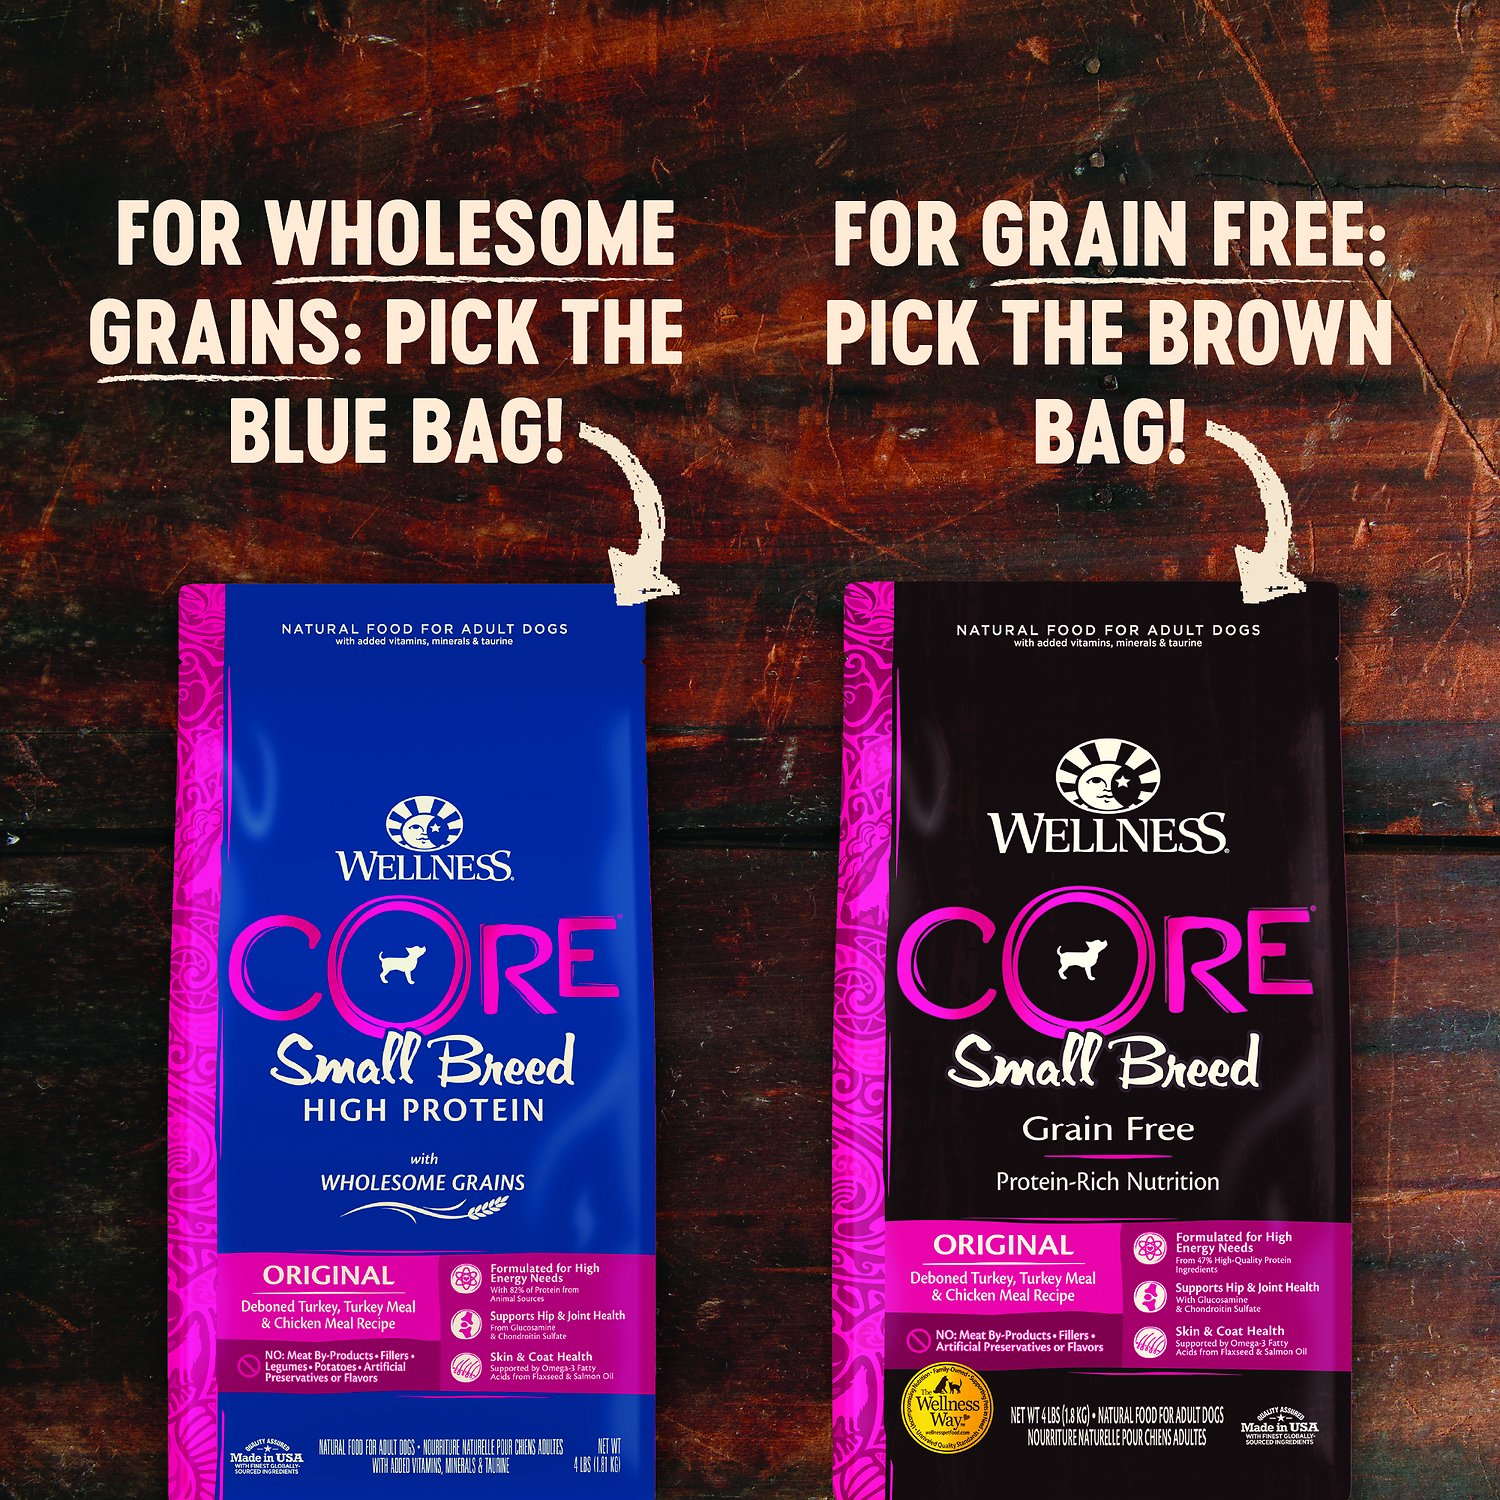 Wellness Core Grain Free Small Breed Turkey Amp Chicken